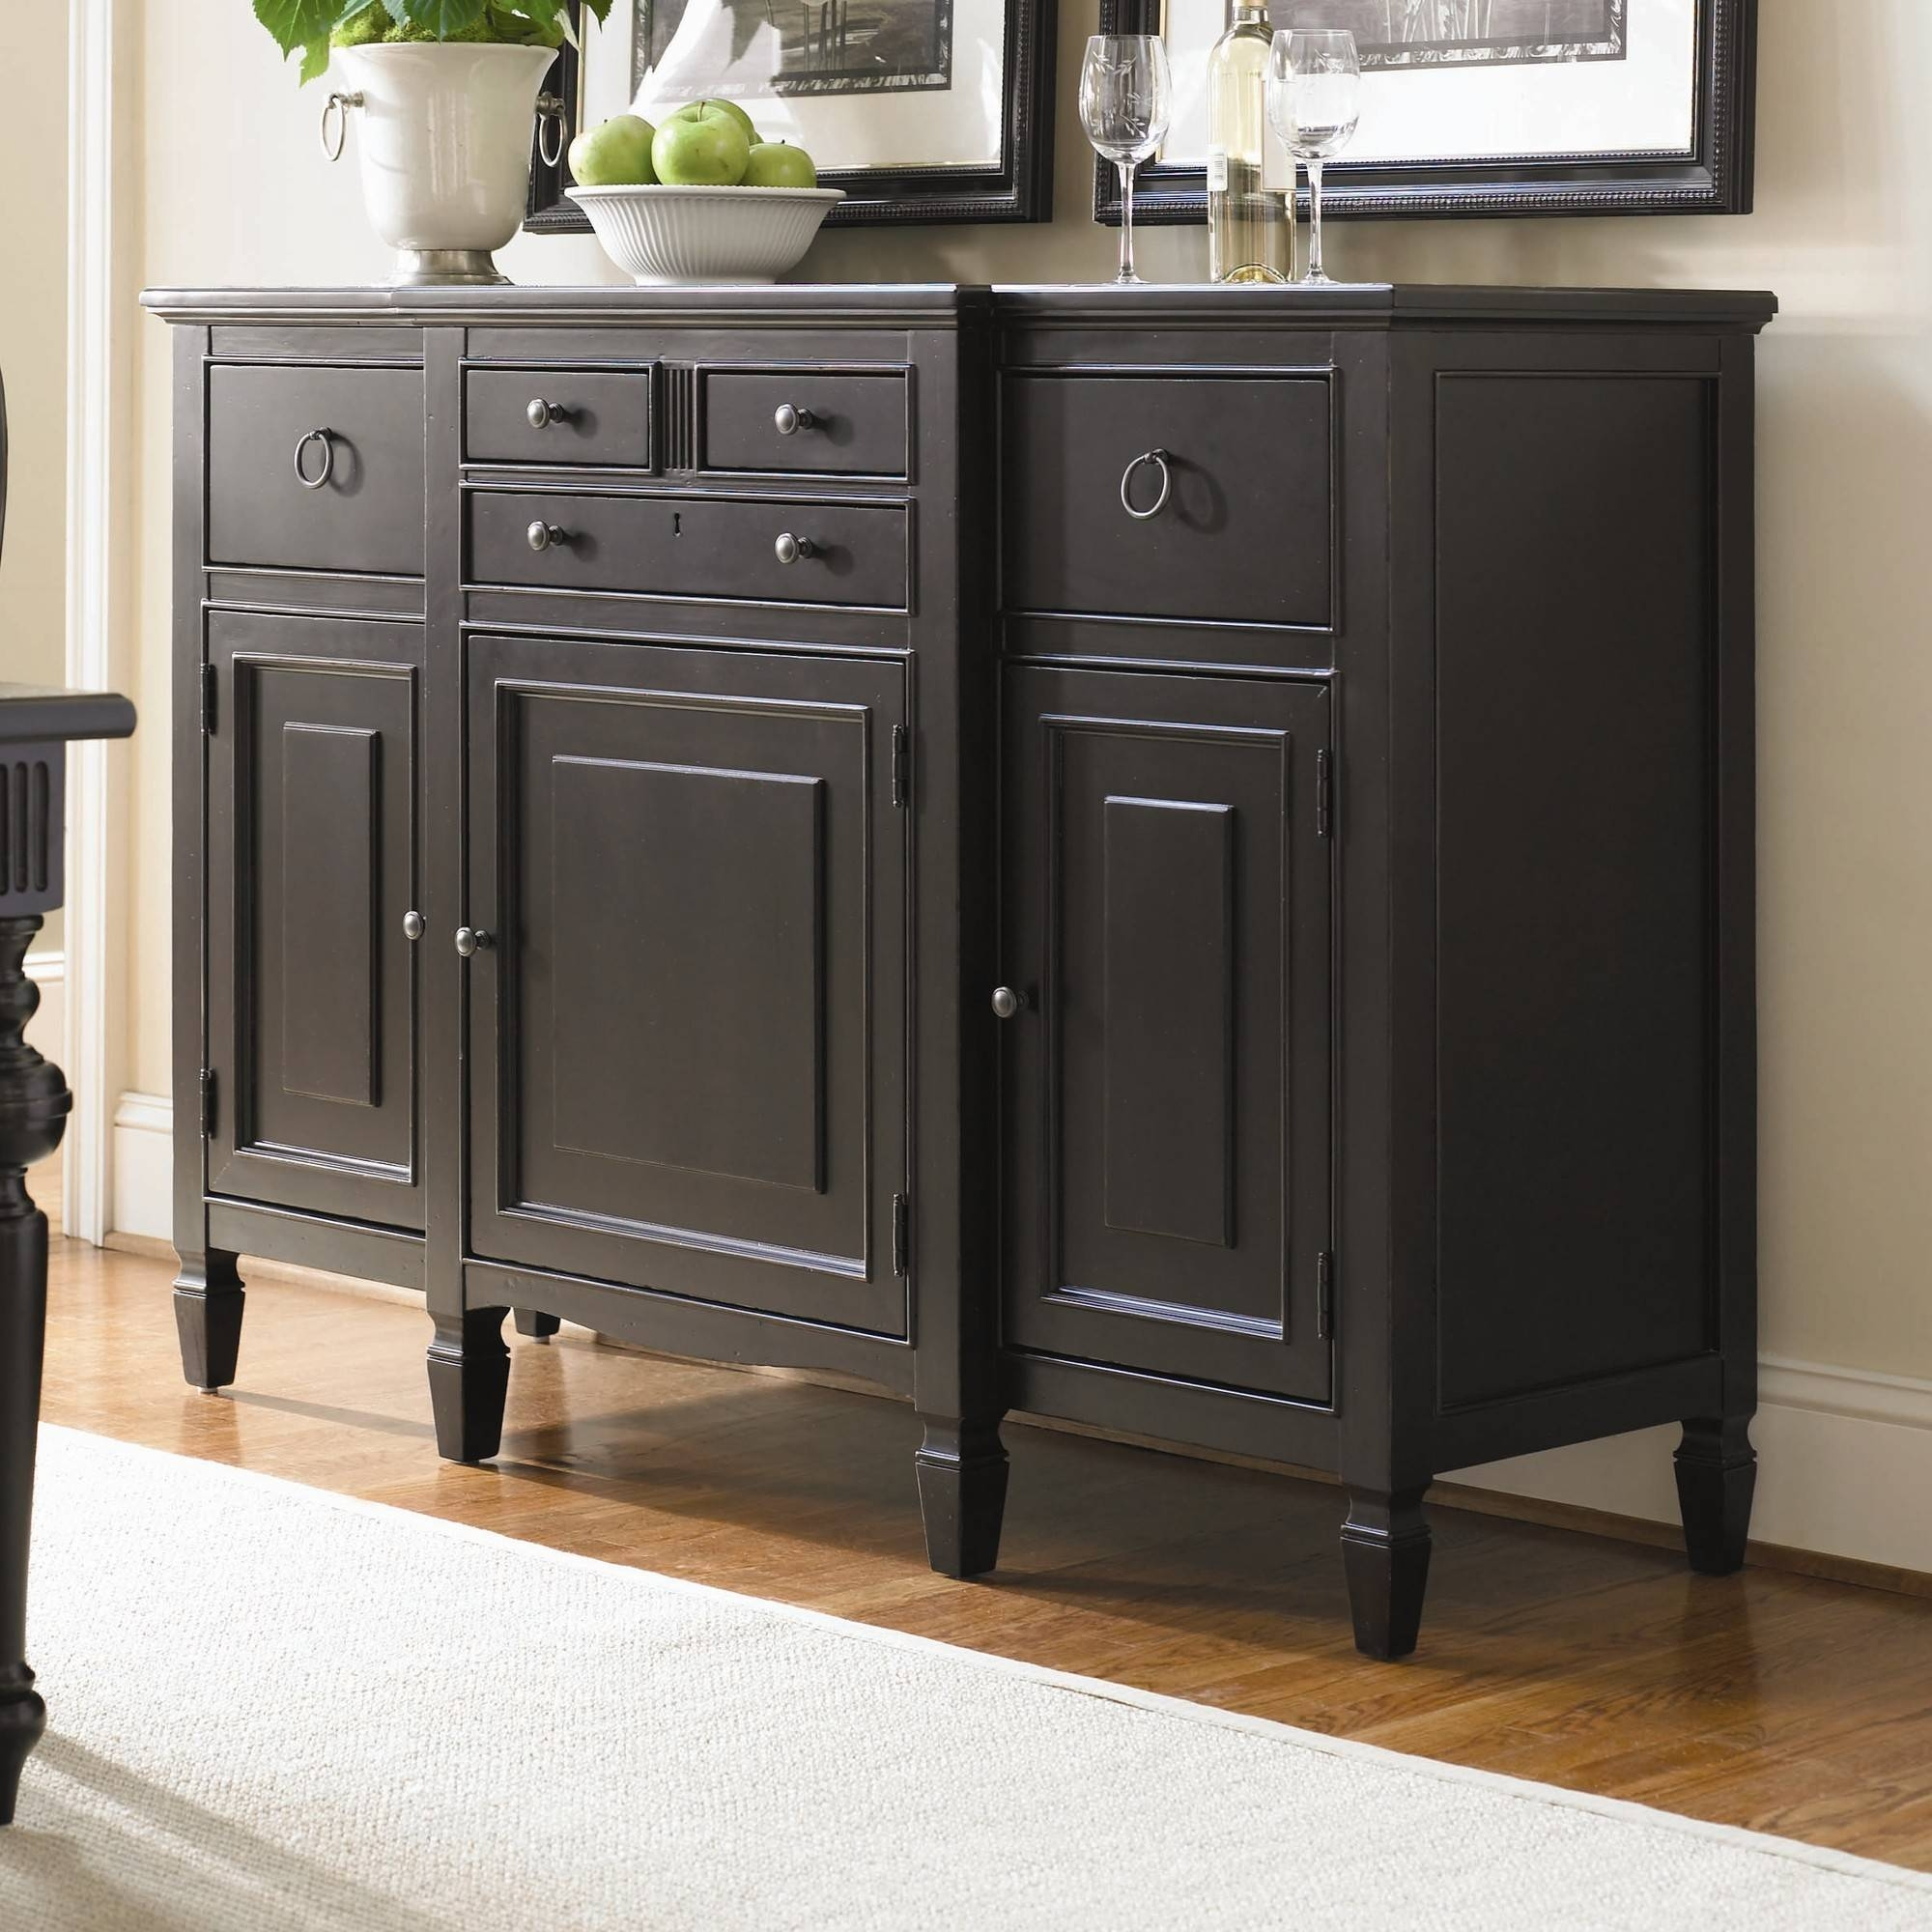 Kitchen : Buffet Server Table Buffet Server Furniture Rustic Within Small Dark Wood Sideboards (#8 of 15)